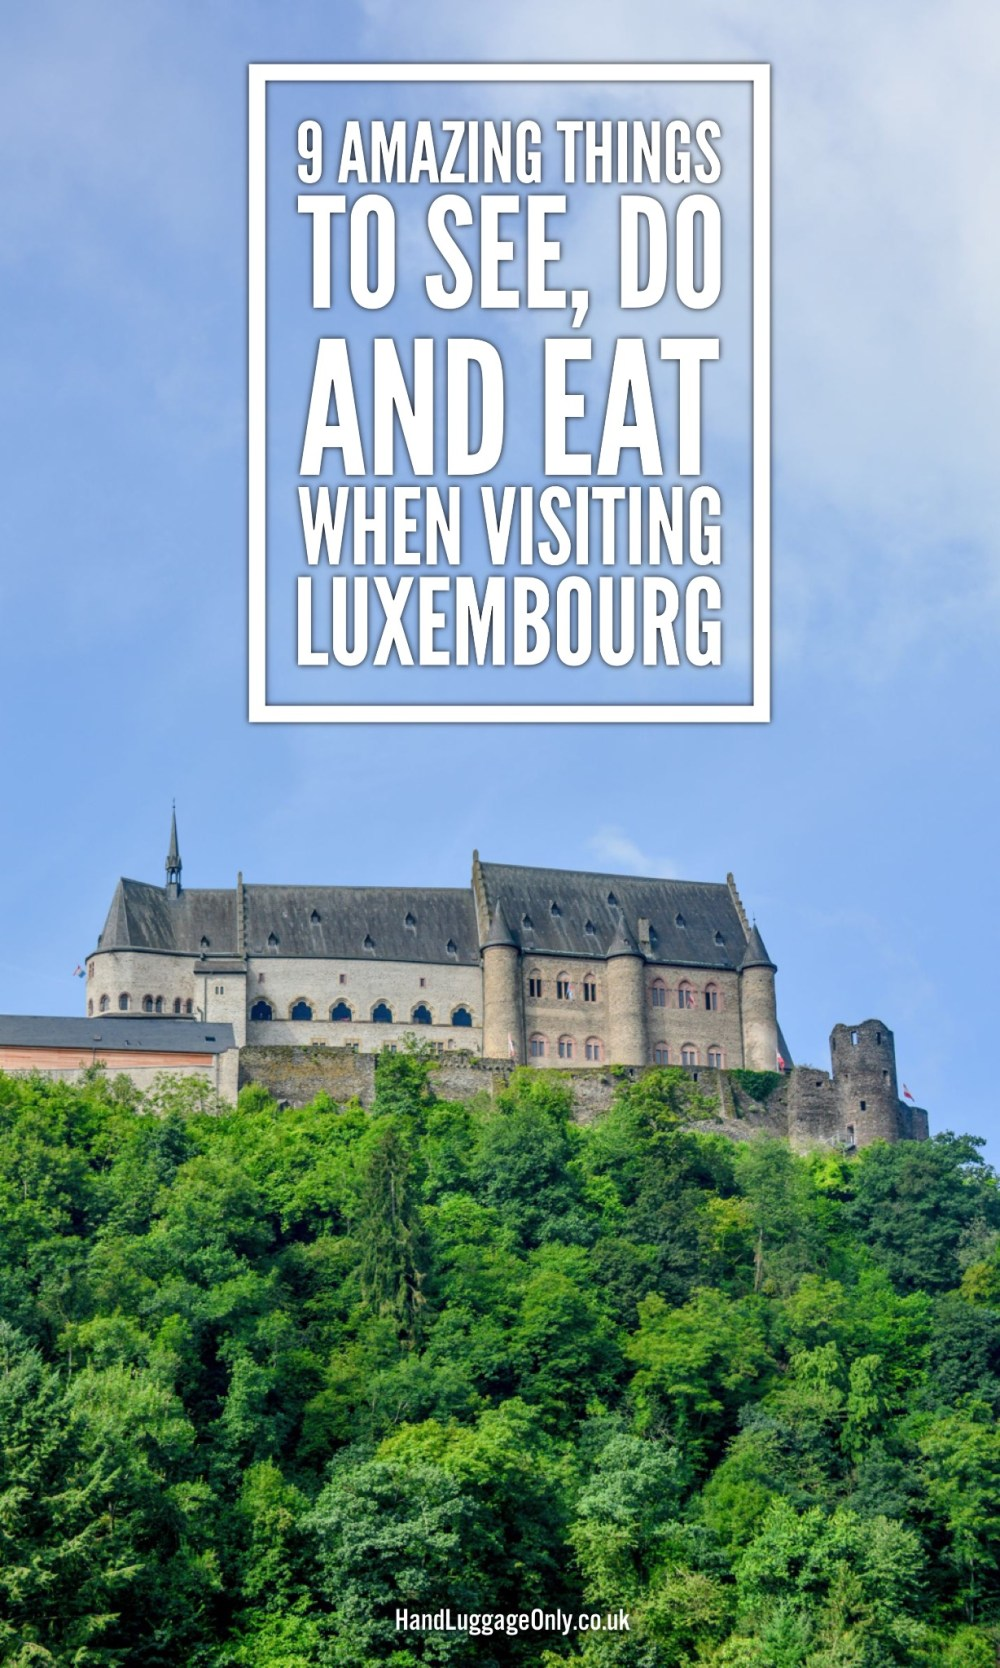 9 Amazing Things To See, Do And Eat When Visiting Luxembourg (1)